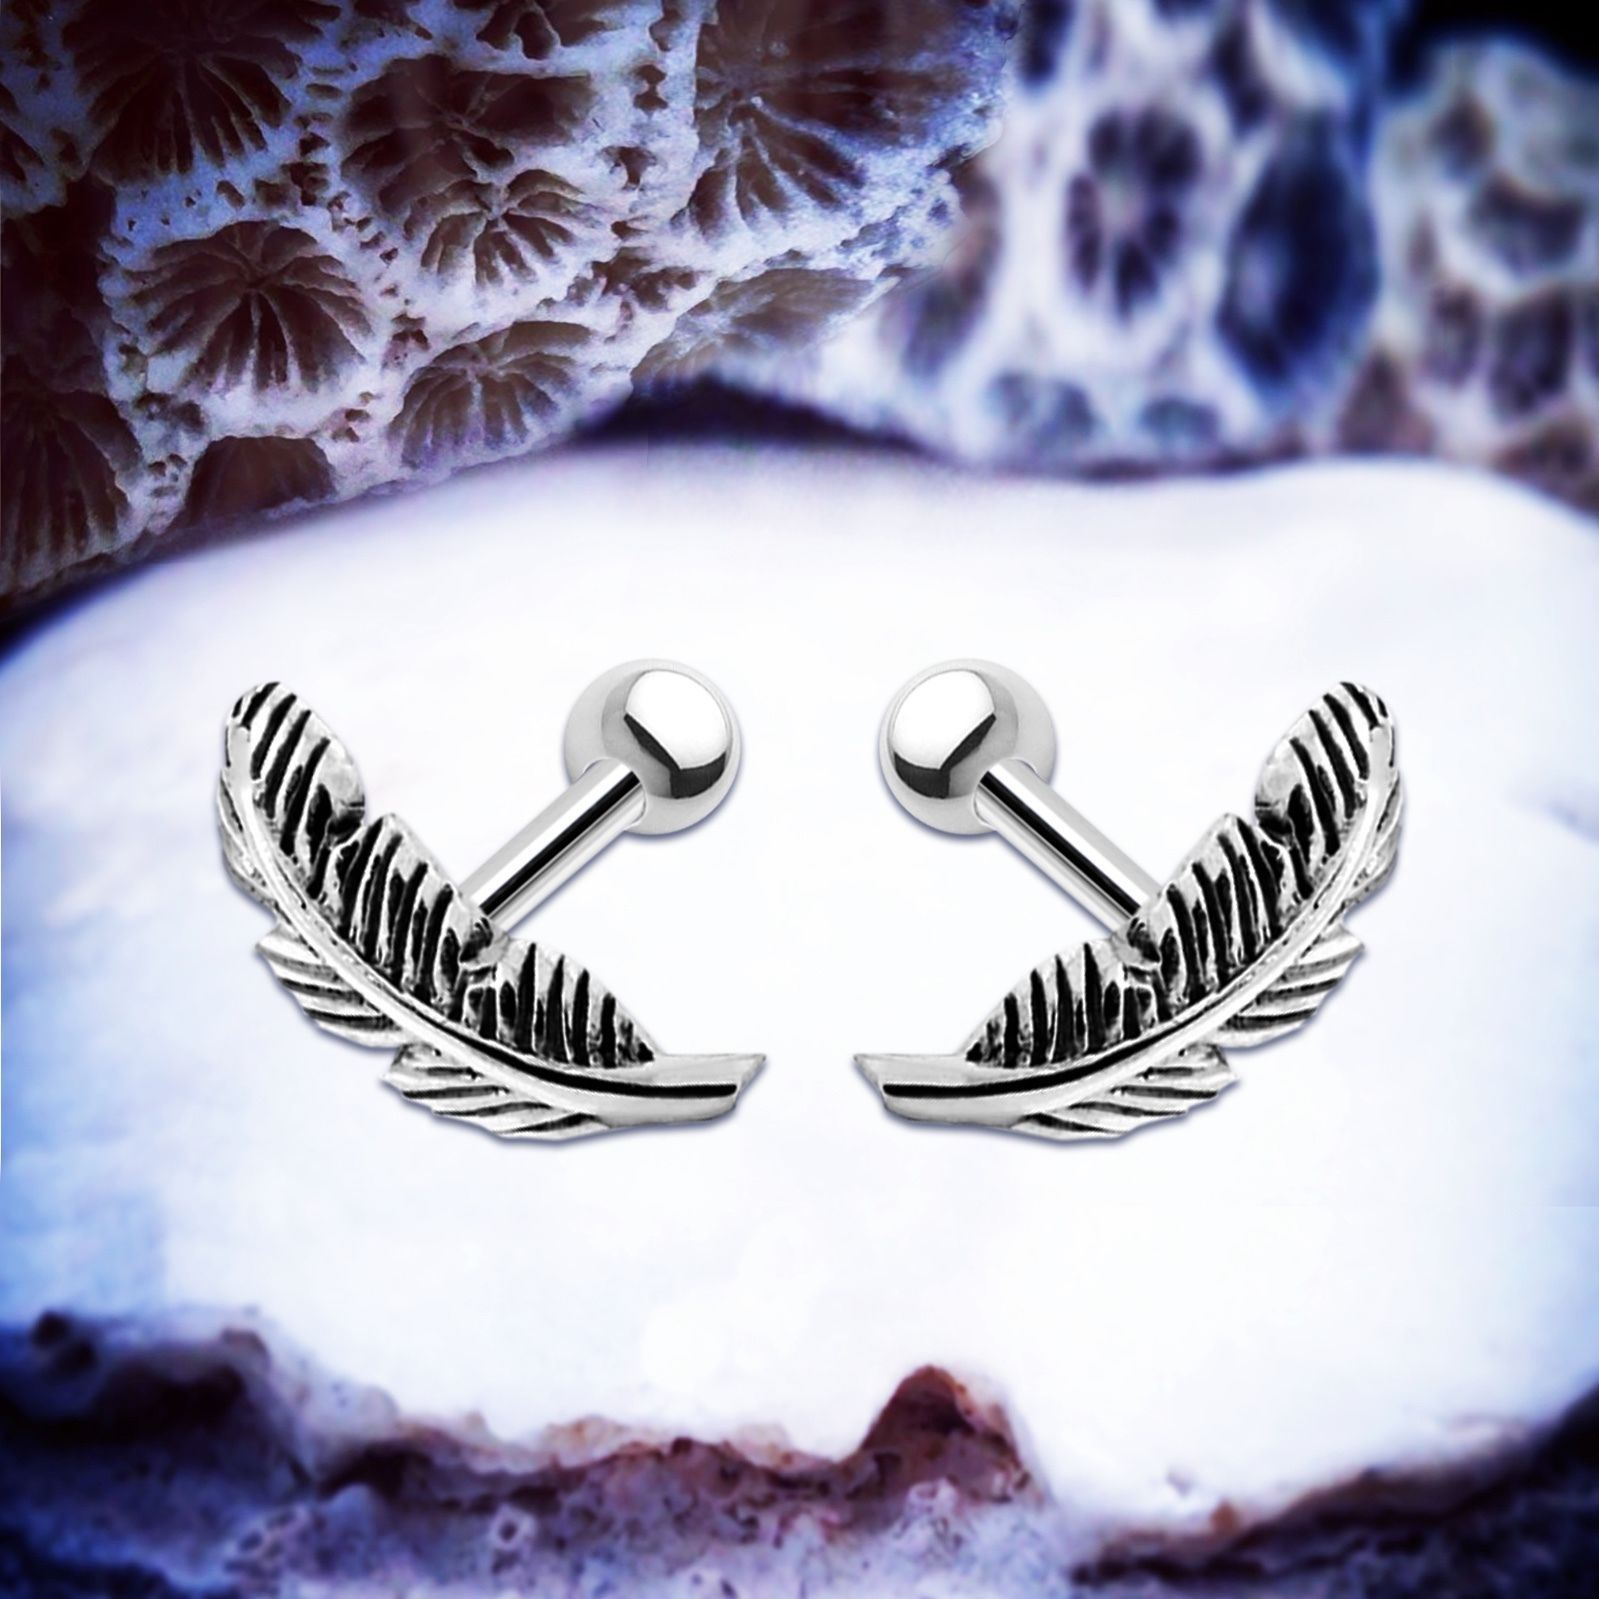 5cc45eab8f199 Details about Pocahontas | Silver Helix Earring Feather Cartilage Piercing  Boho Ear Stud Conch